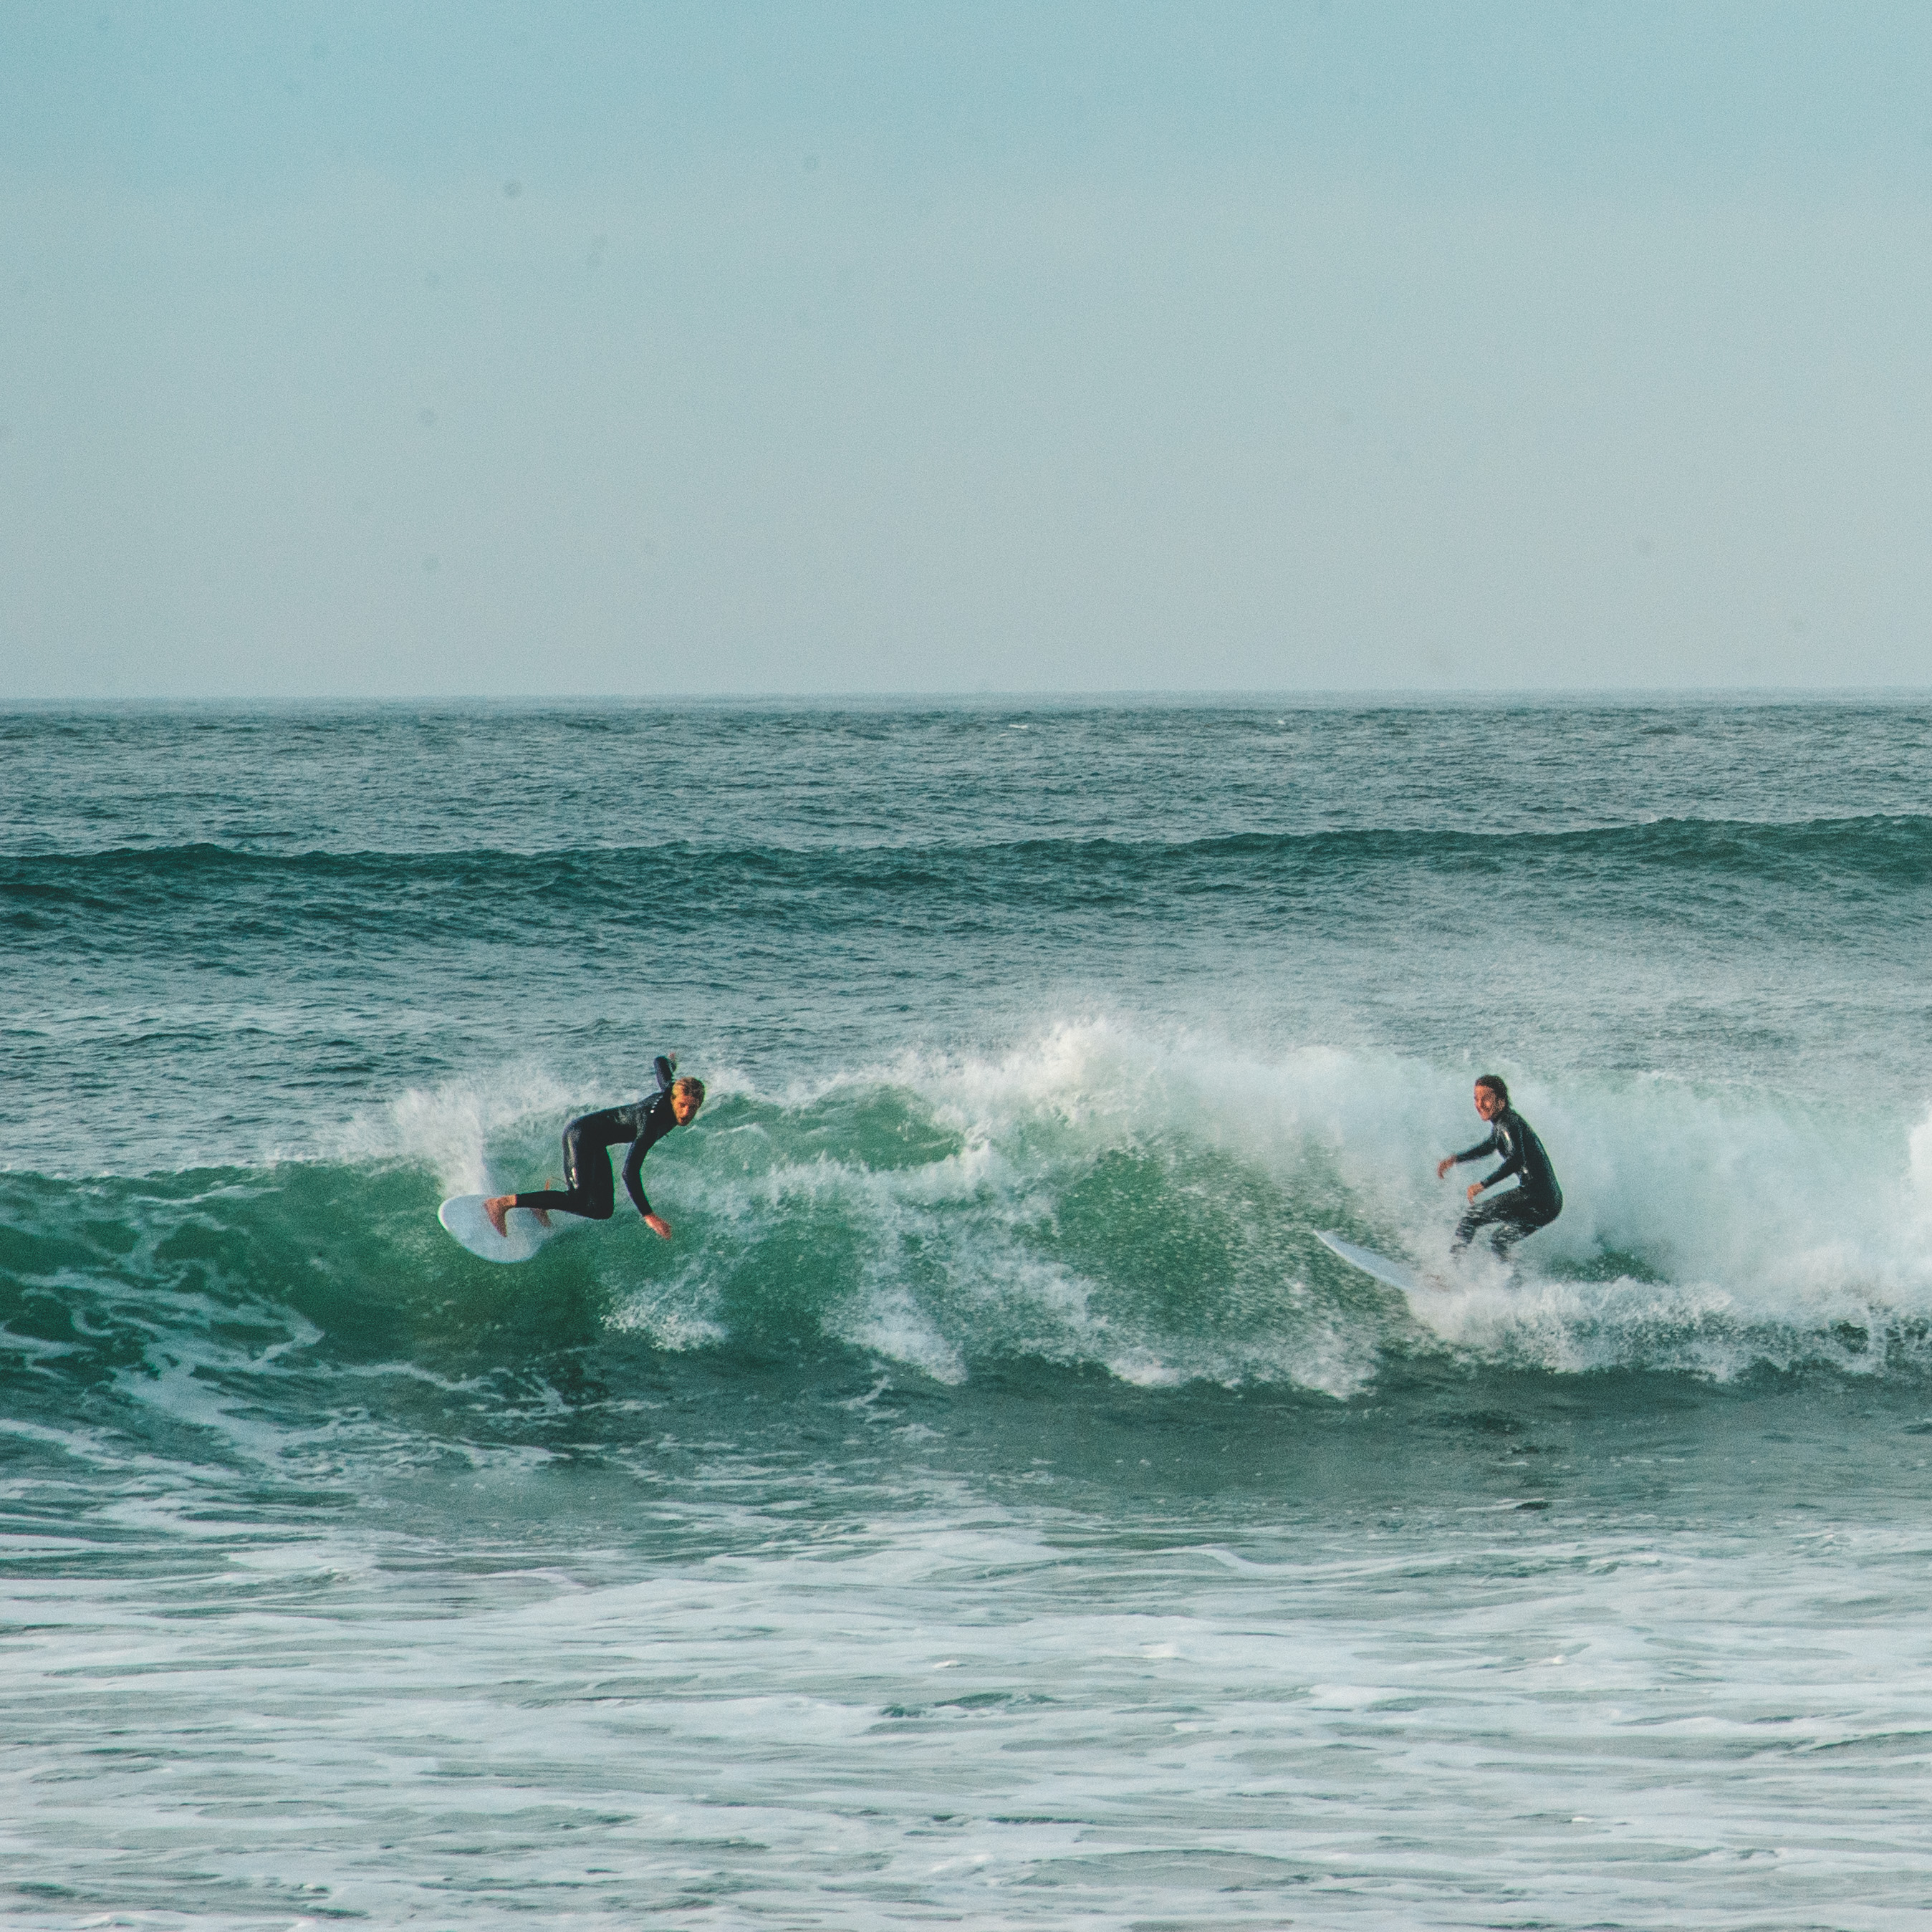 Surf Safety, Etiquette and General Know How